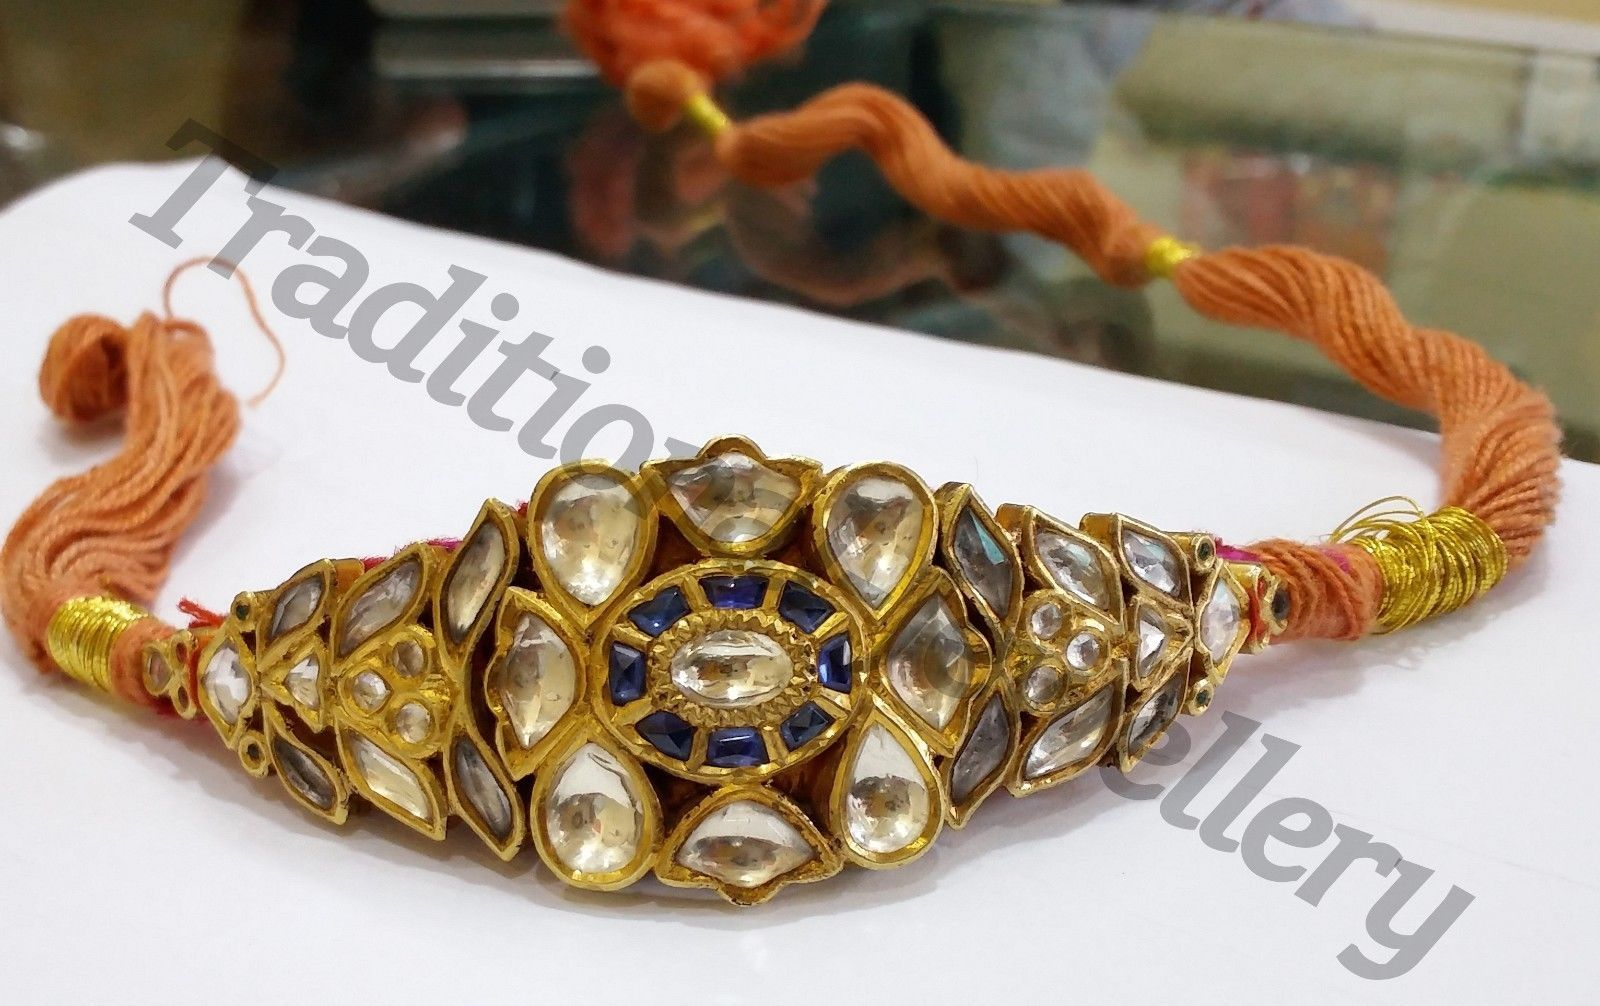 Primary image for FABULOUS 22K YELLOW GOLD HANDMADE JADAU BRACELET GORGEOUS CUFF BRACELET BANGLE